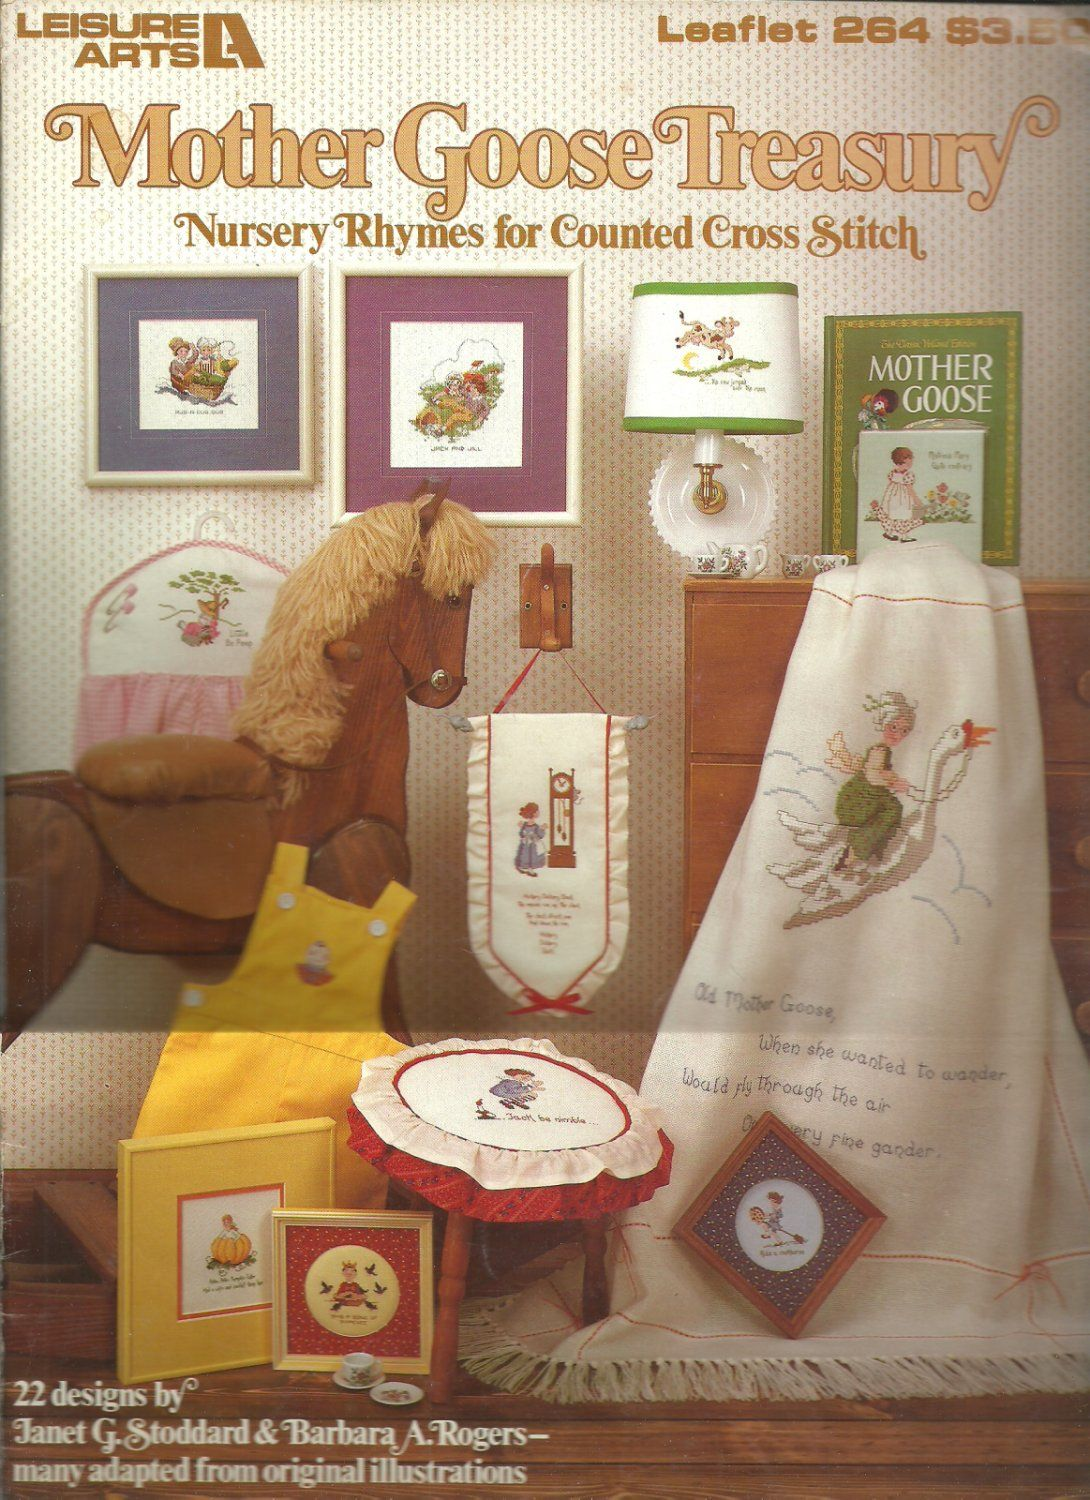 Leisure Arts- Mother Goose Treasury - Nursery Rhymes for counted cross stitch